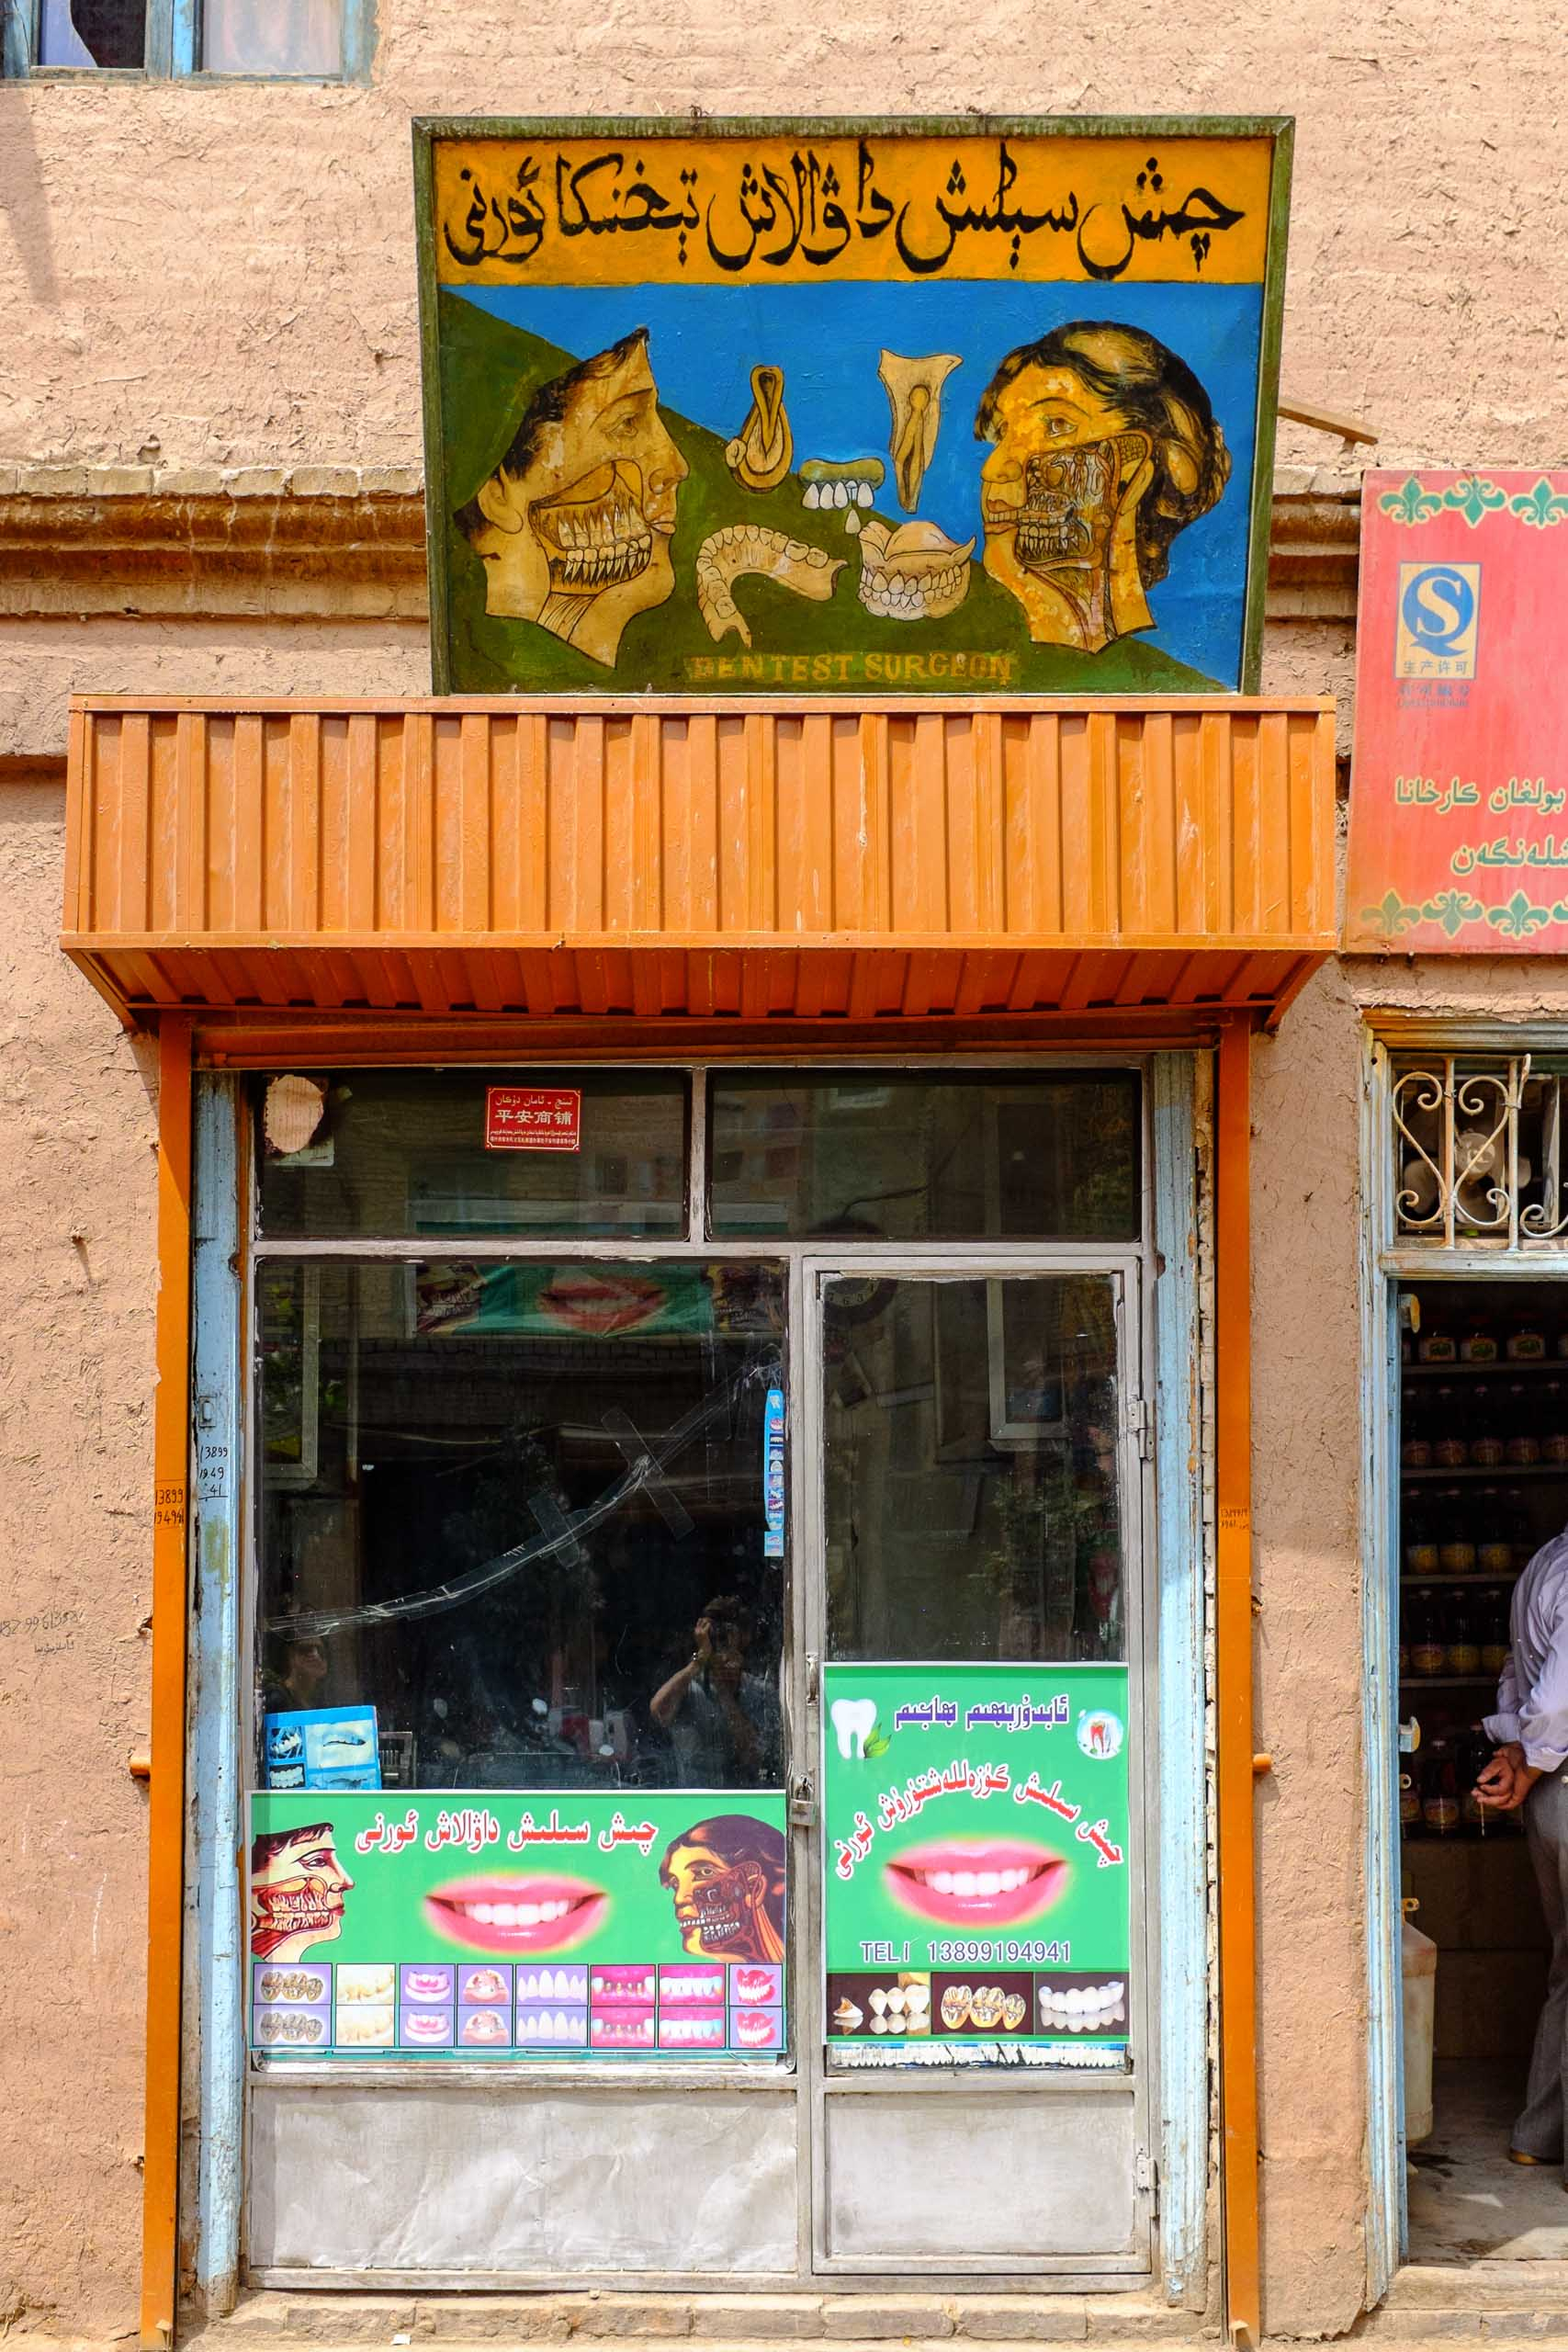 There are more dentist offices than barber shops in Kashgar